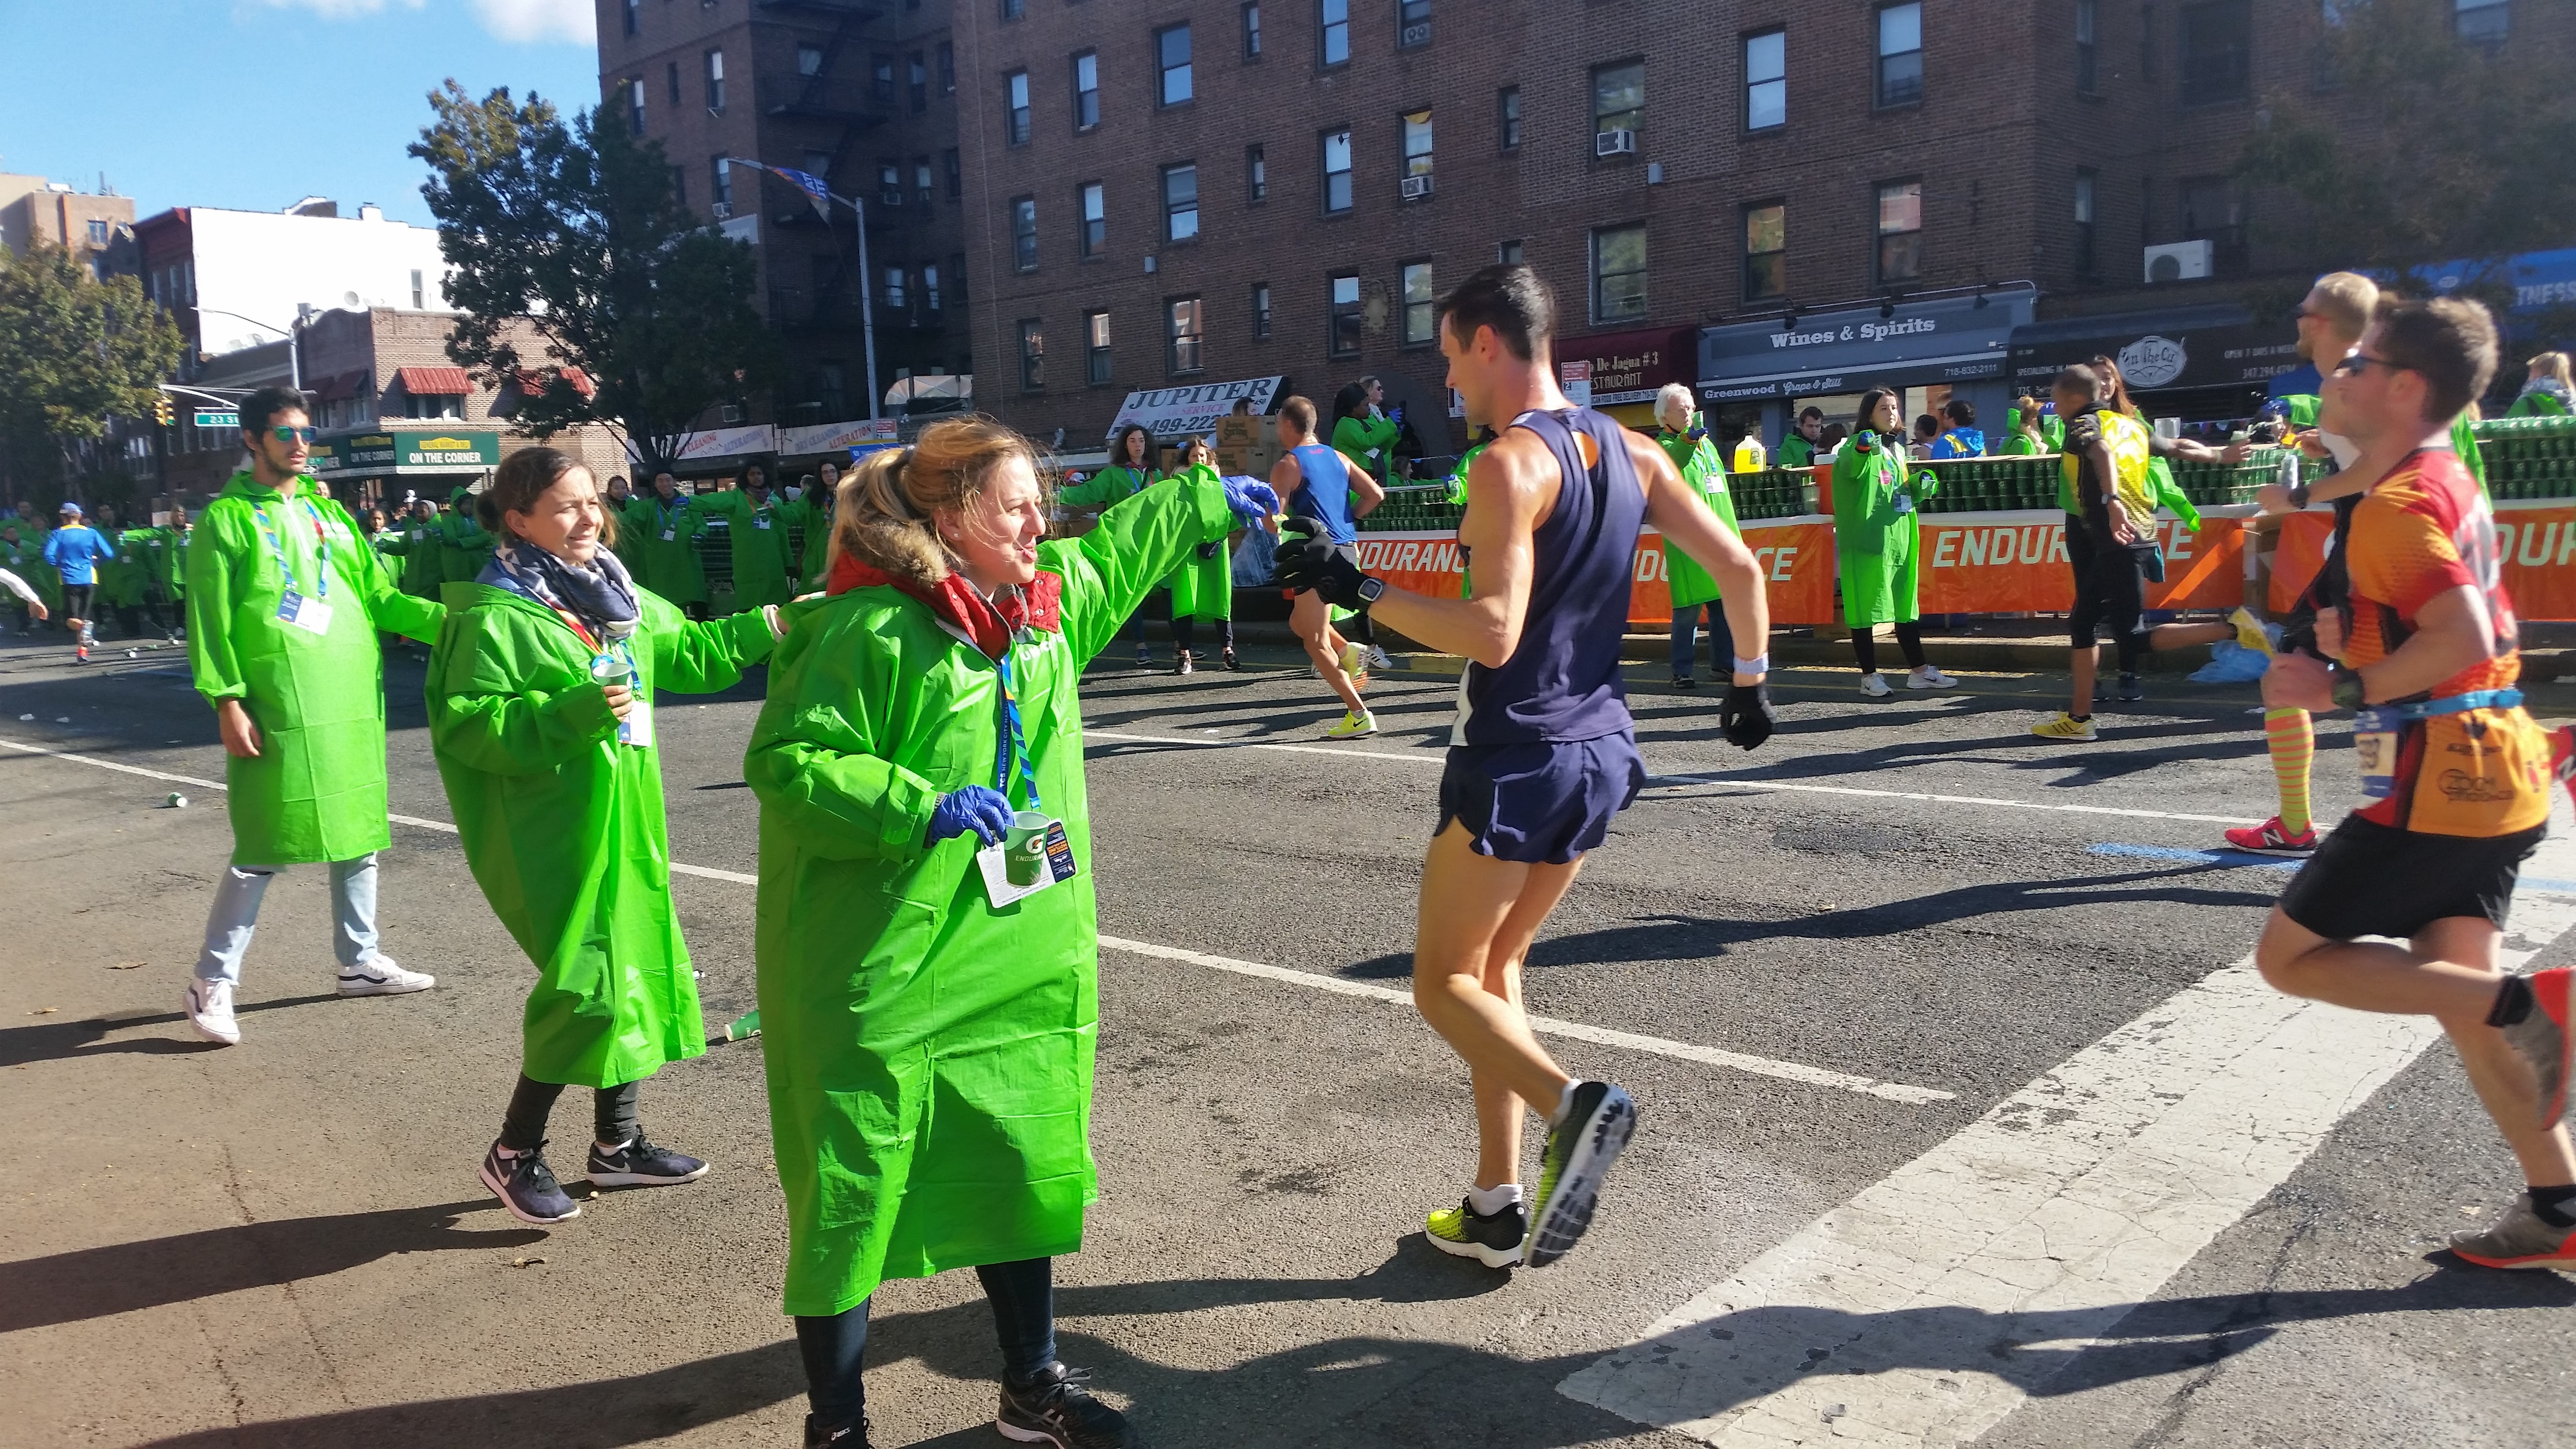 Three young volunteers in green parkas hold out cups to passing marathon runners